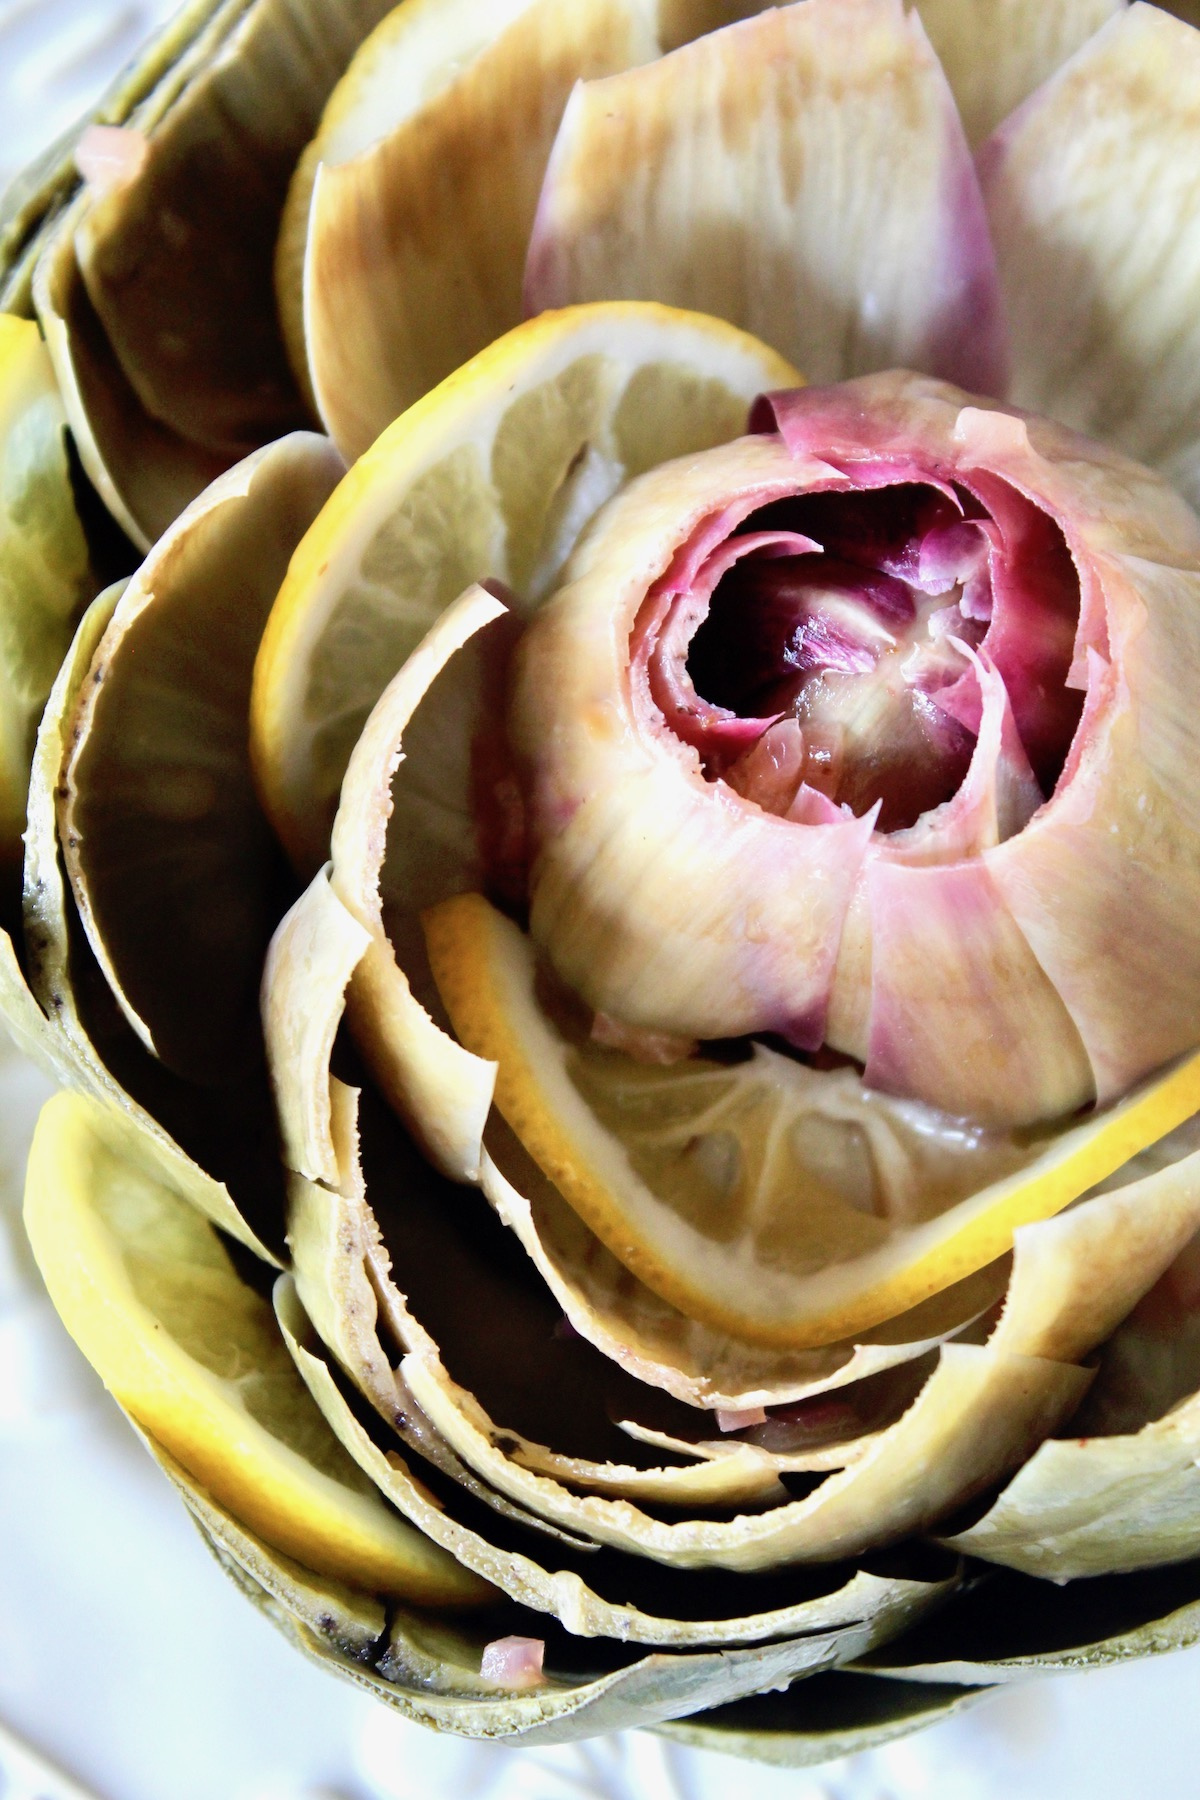 close up of Steamed artichoke with lemon beurre blanc and lemon slices between the leaves on a white plate